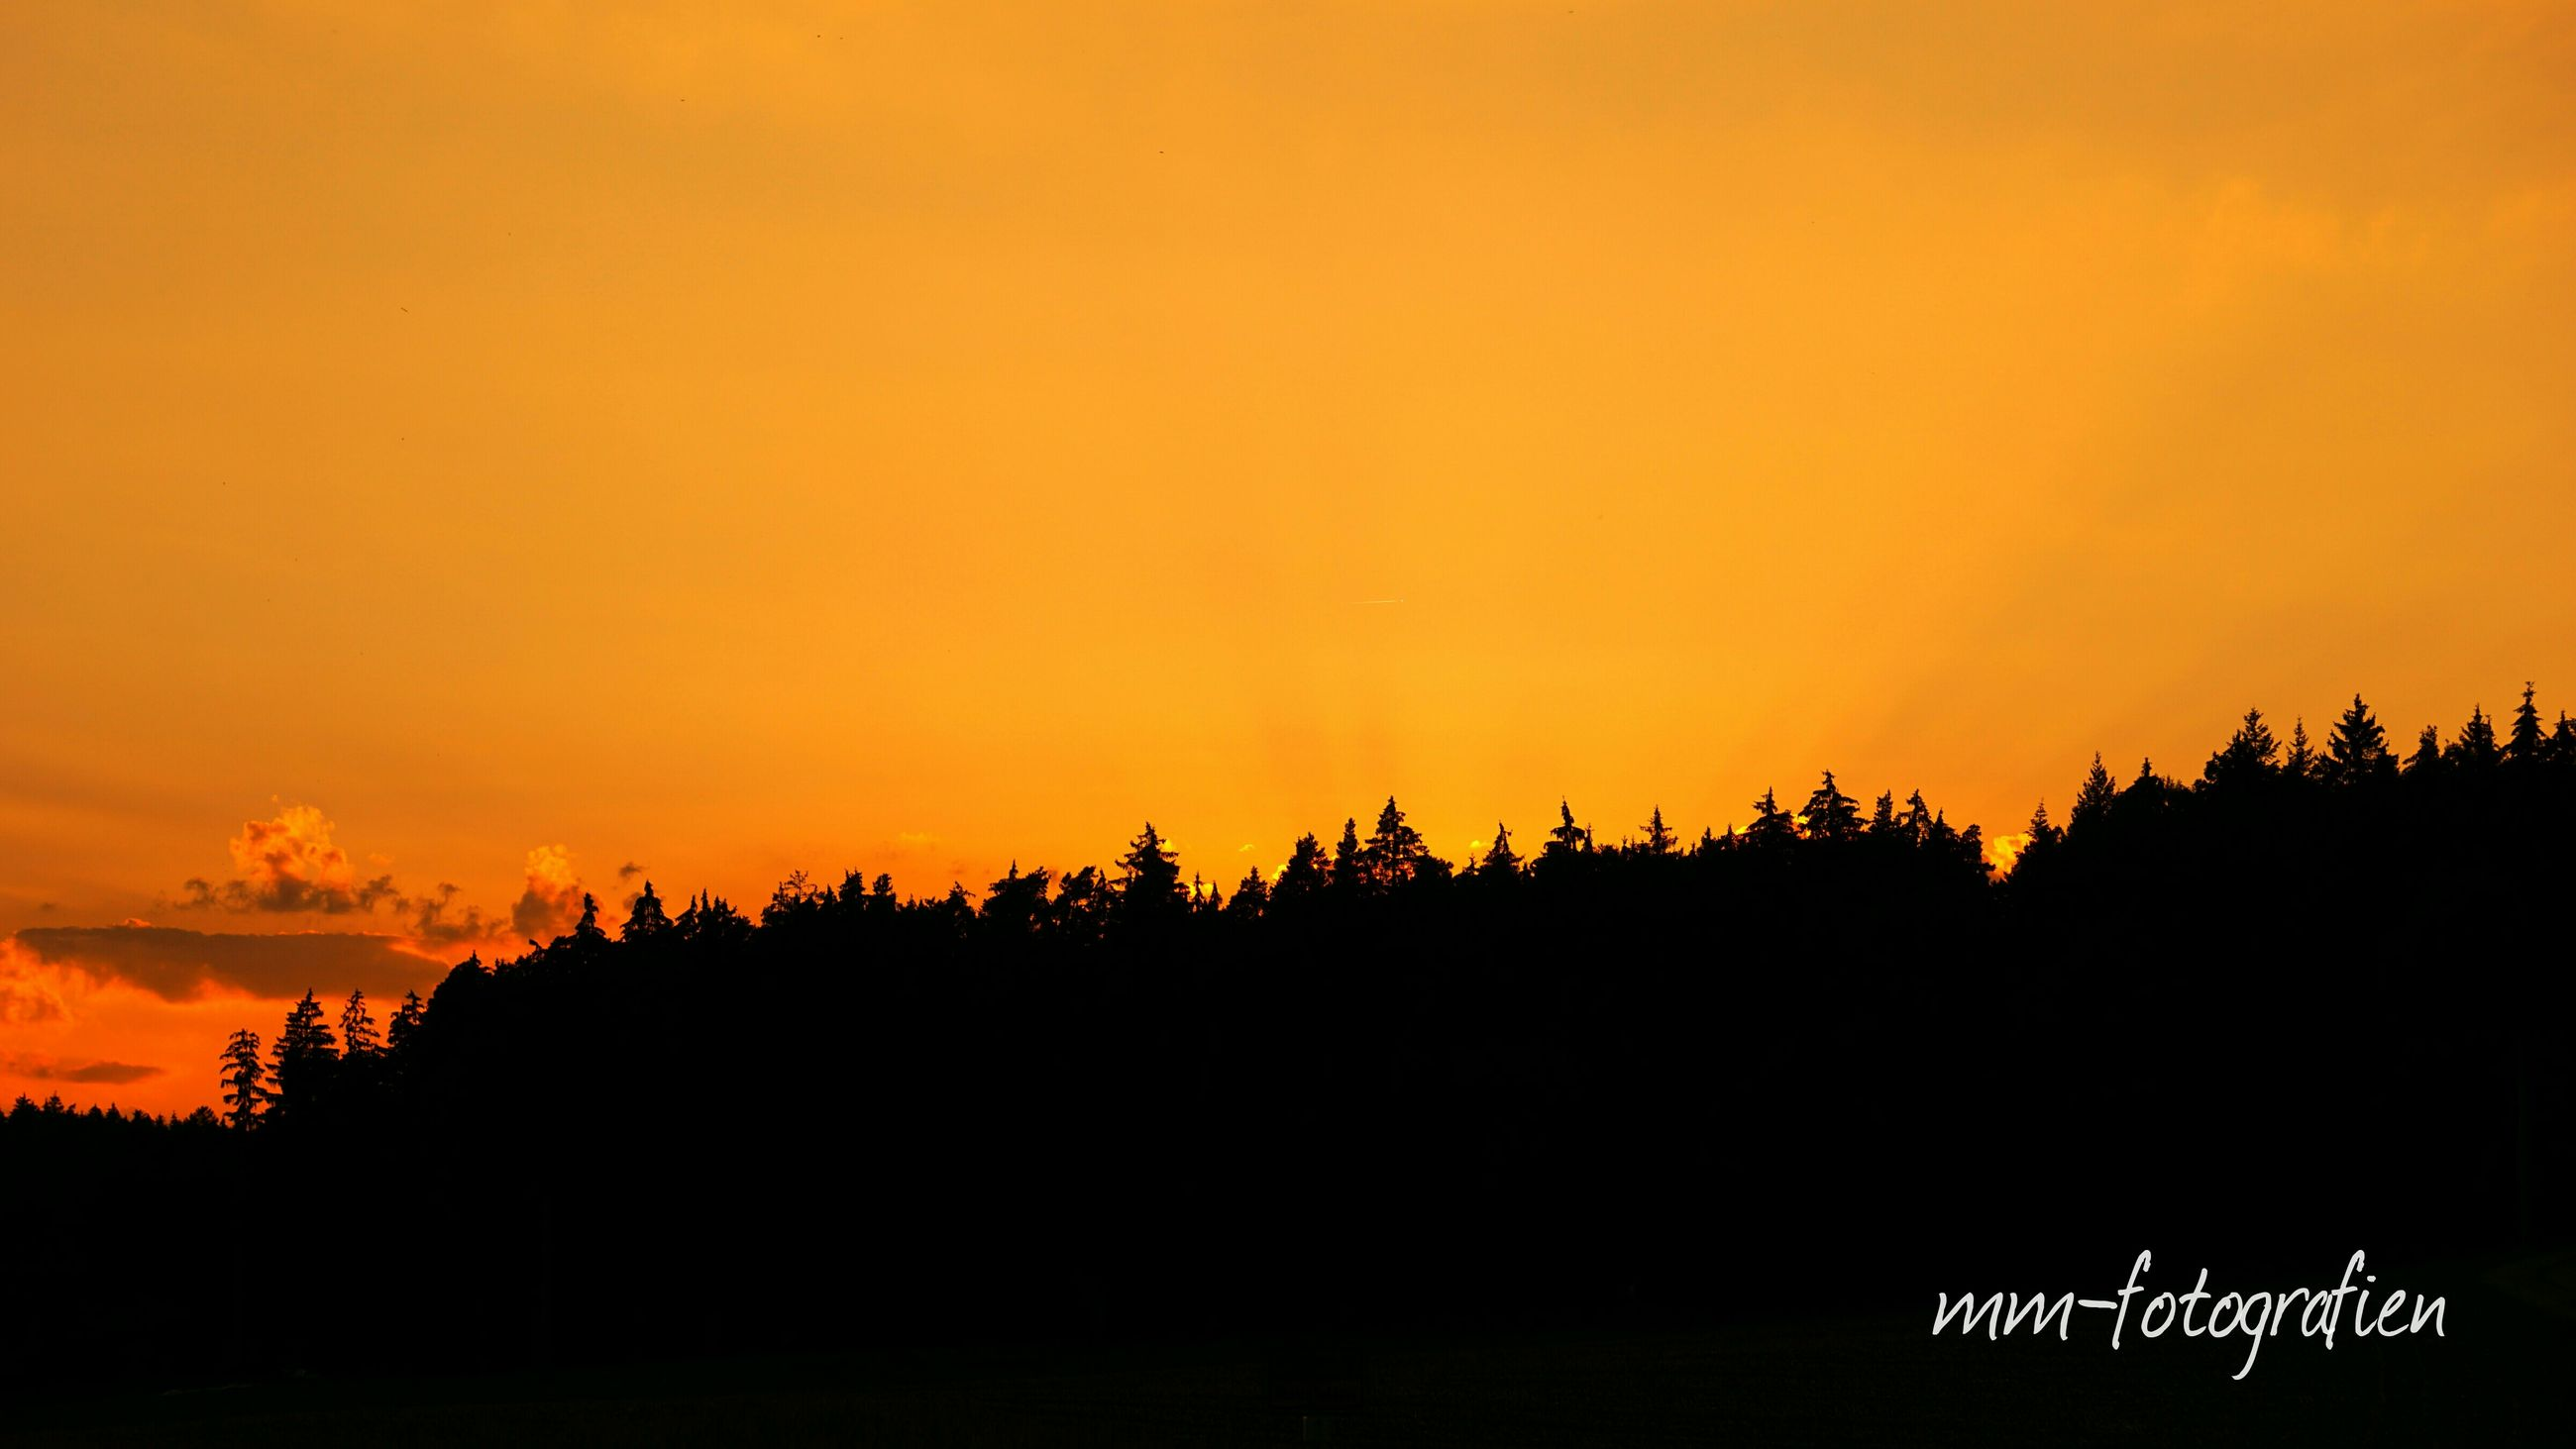 sunset, silhouette, copy space, orange color, beauty in nature, clear sky, scenics, tranquil scene, tranquility, nature, idyllic, tree, sky, growth, outdoors, landscape, no people, dusk, outline, dark